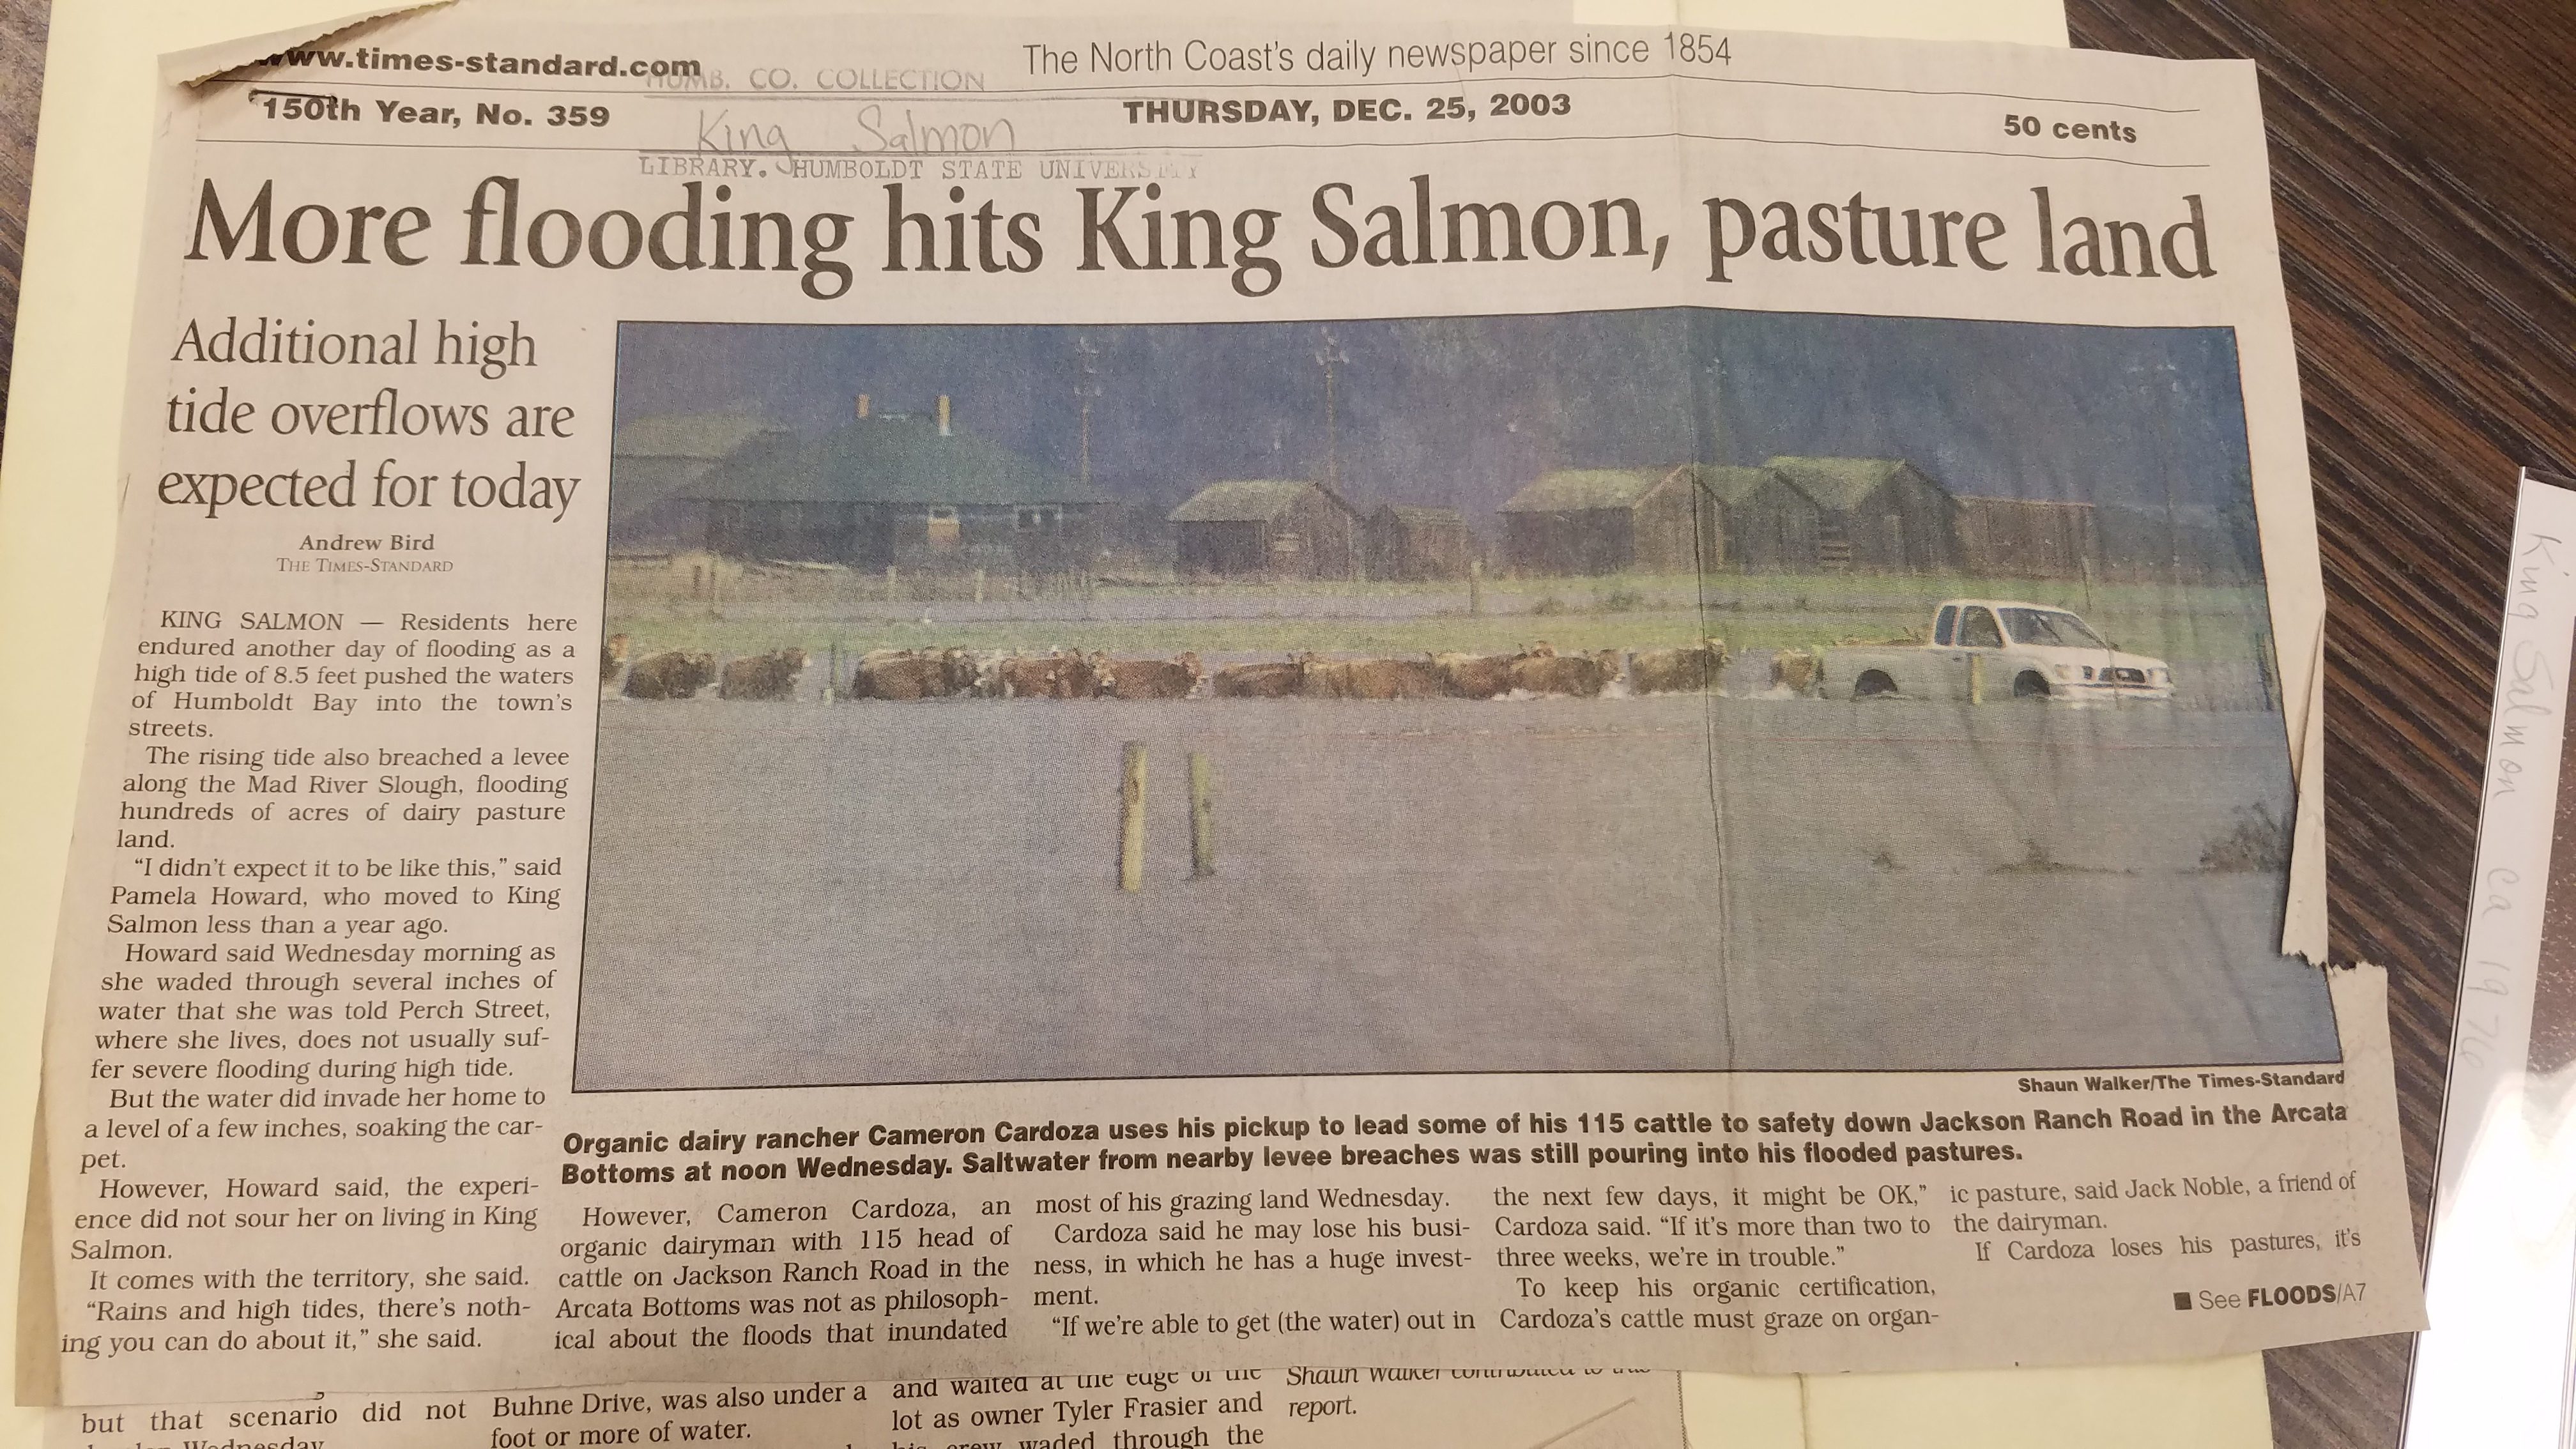 Old newspaper clipping about flooding in King Salmon